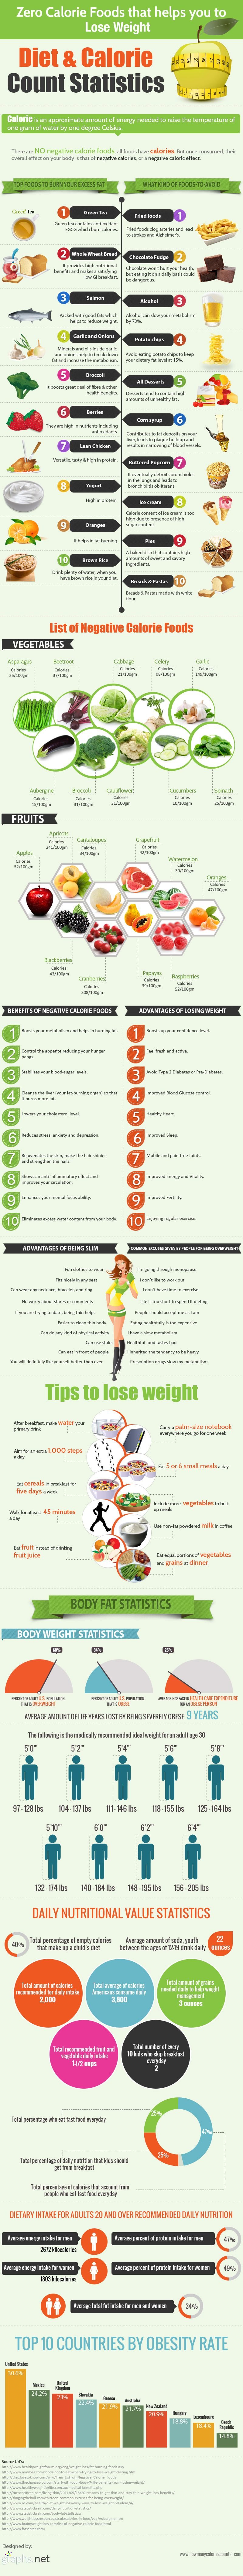 Quick weight loss diet tips zero calorie foods lost weight and zero calorie foods that help you to lose weight nvjuhfo Image collections